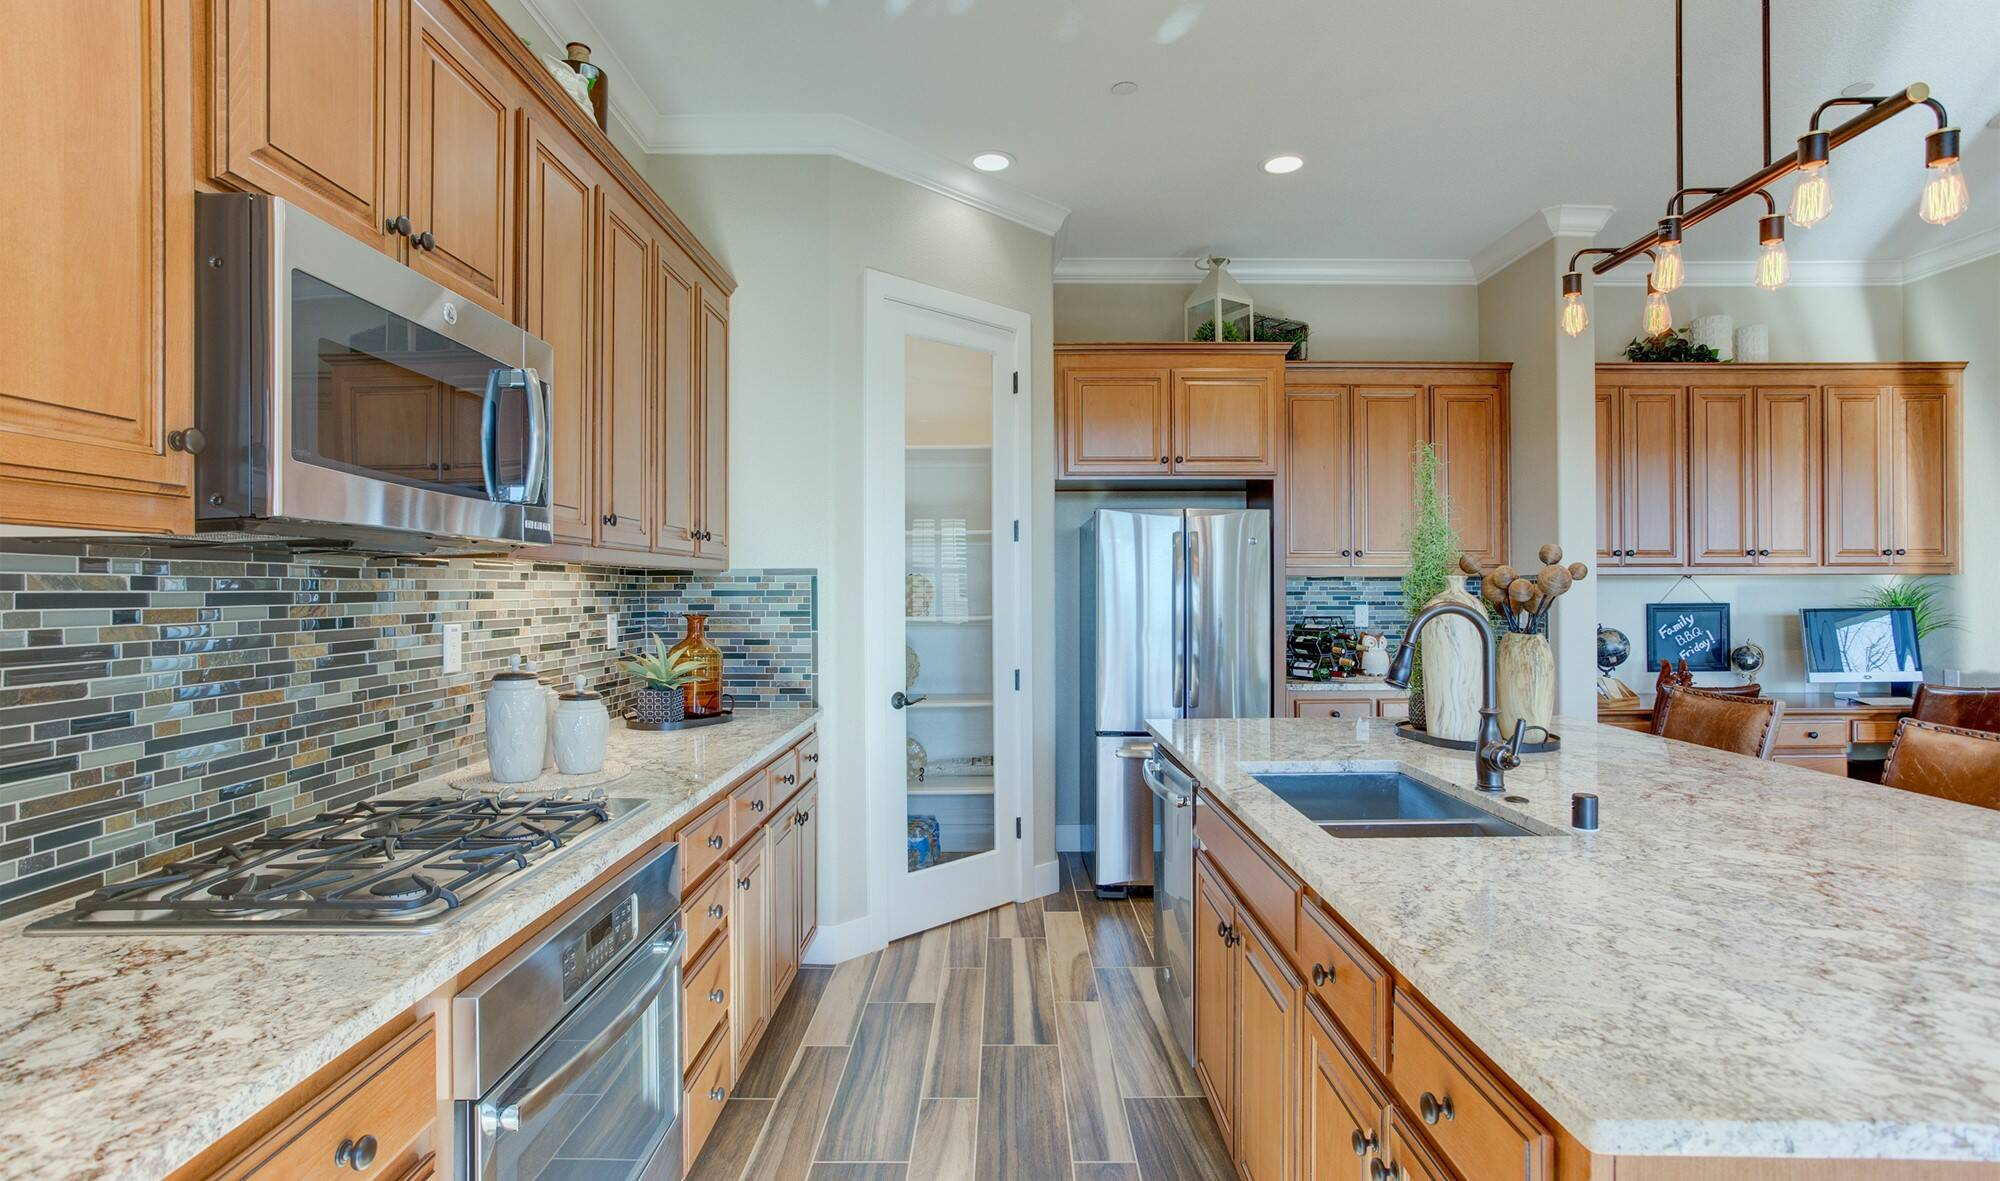 Parkview at Sterling Meadows - Garden 8812 Upbeat Way, Homesite 57